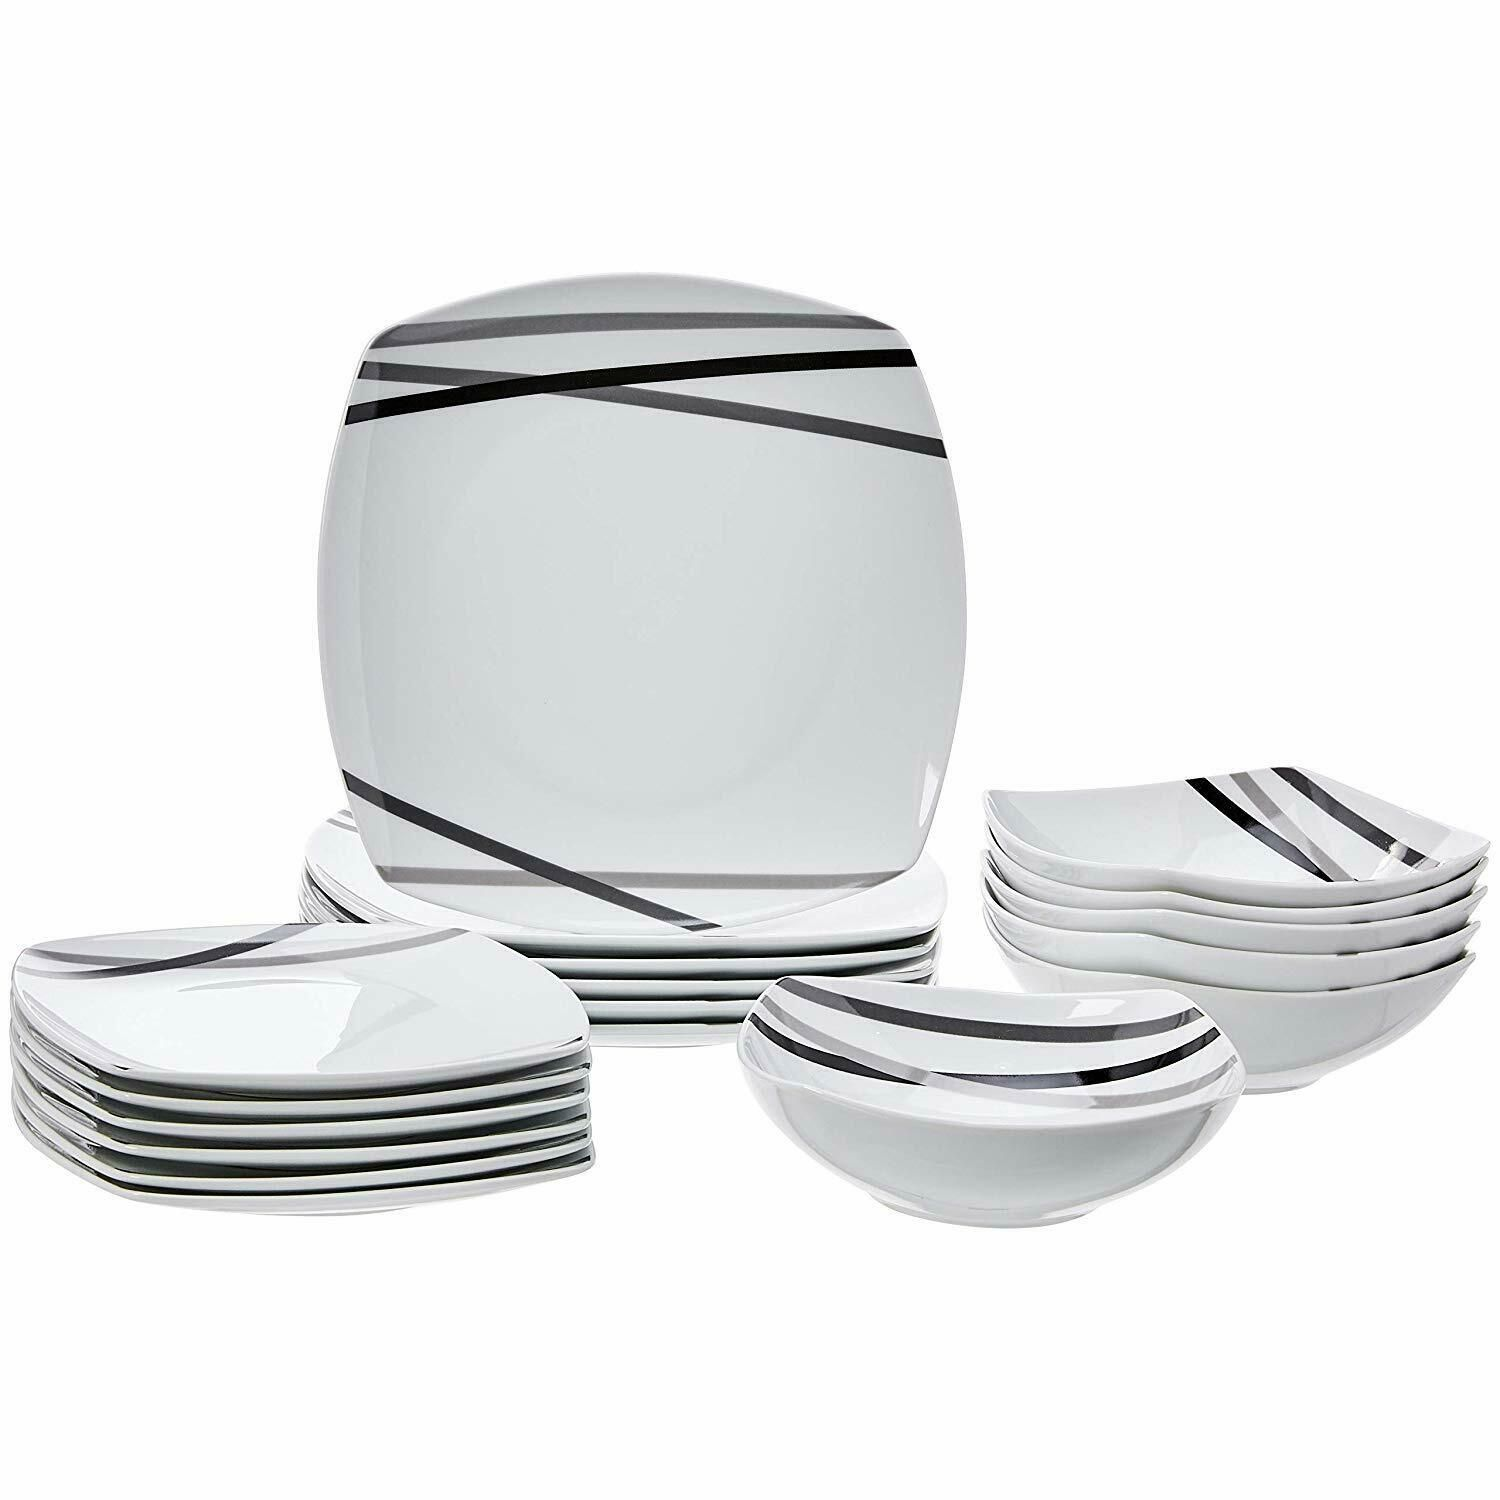 Dinnerware Set Kitchen Service For 6 Porcelain Plates Modern